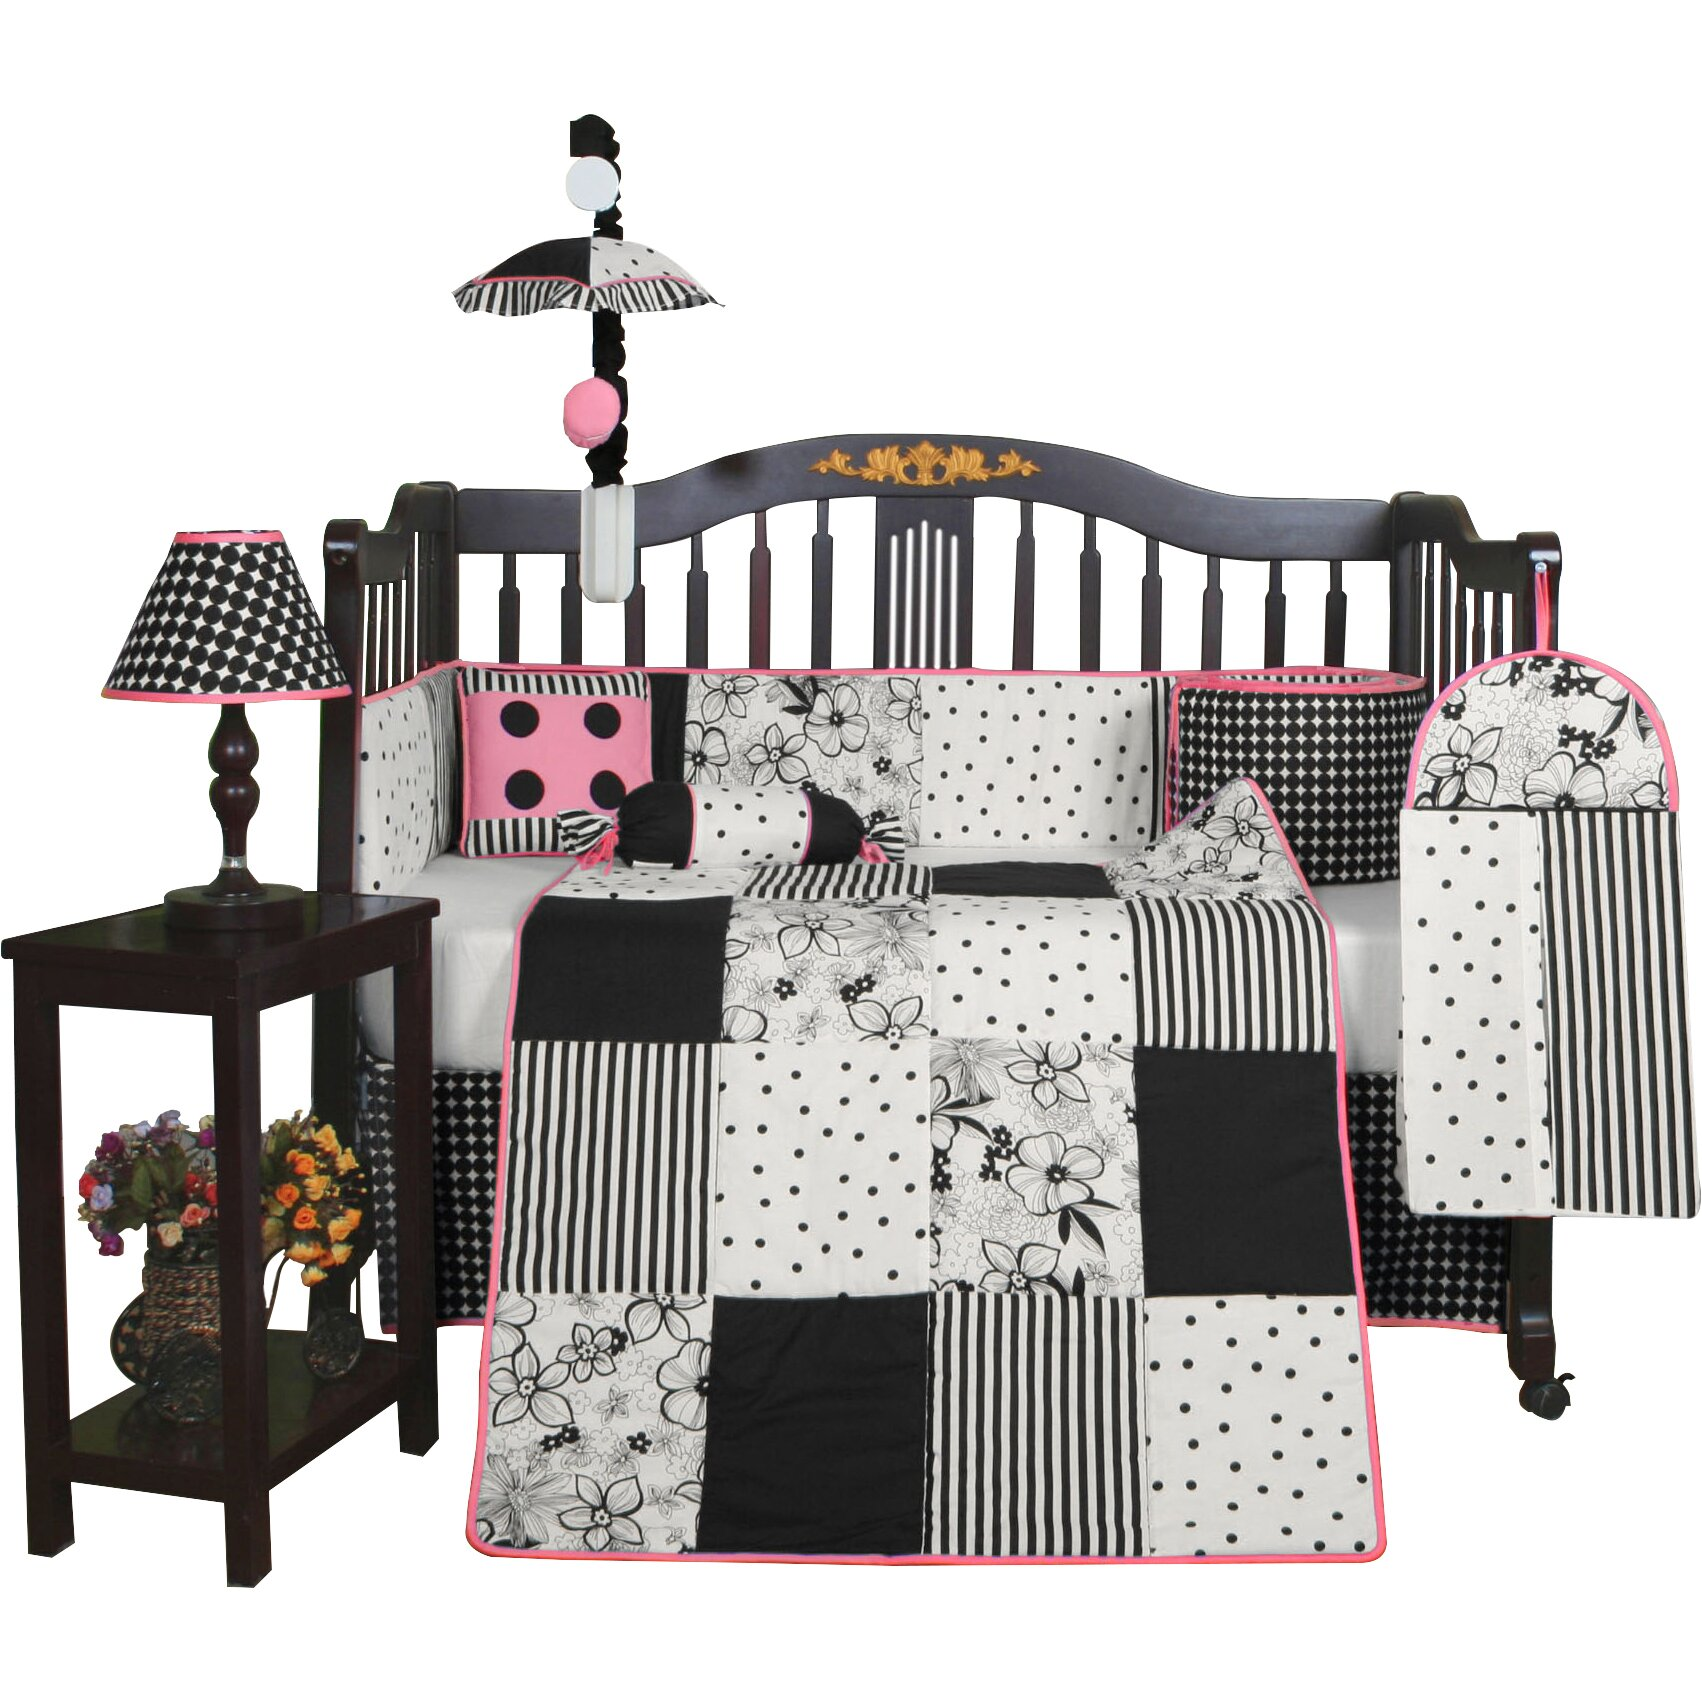 Geenny boutique flower and dot 13 piece crib bedding set reviews wayfair - Geenny crib bedding sets ...